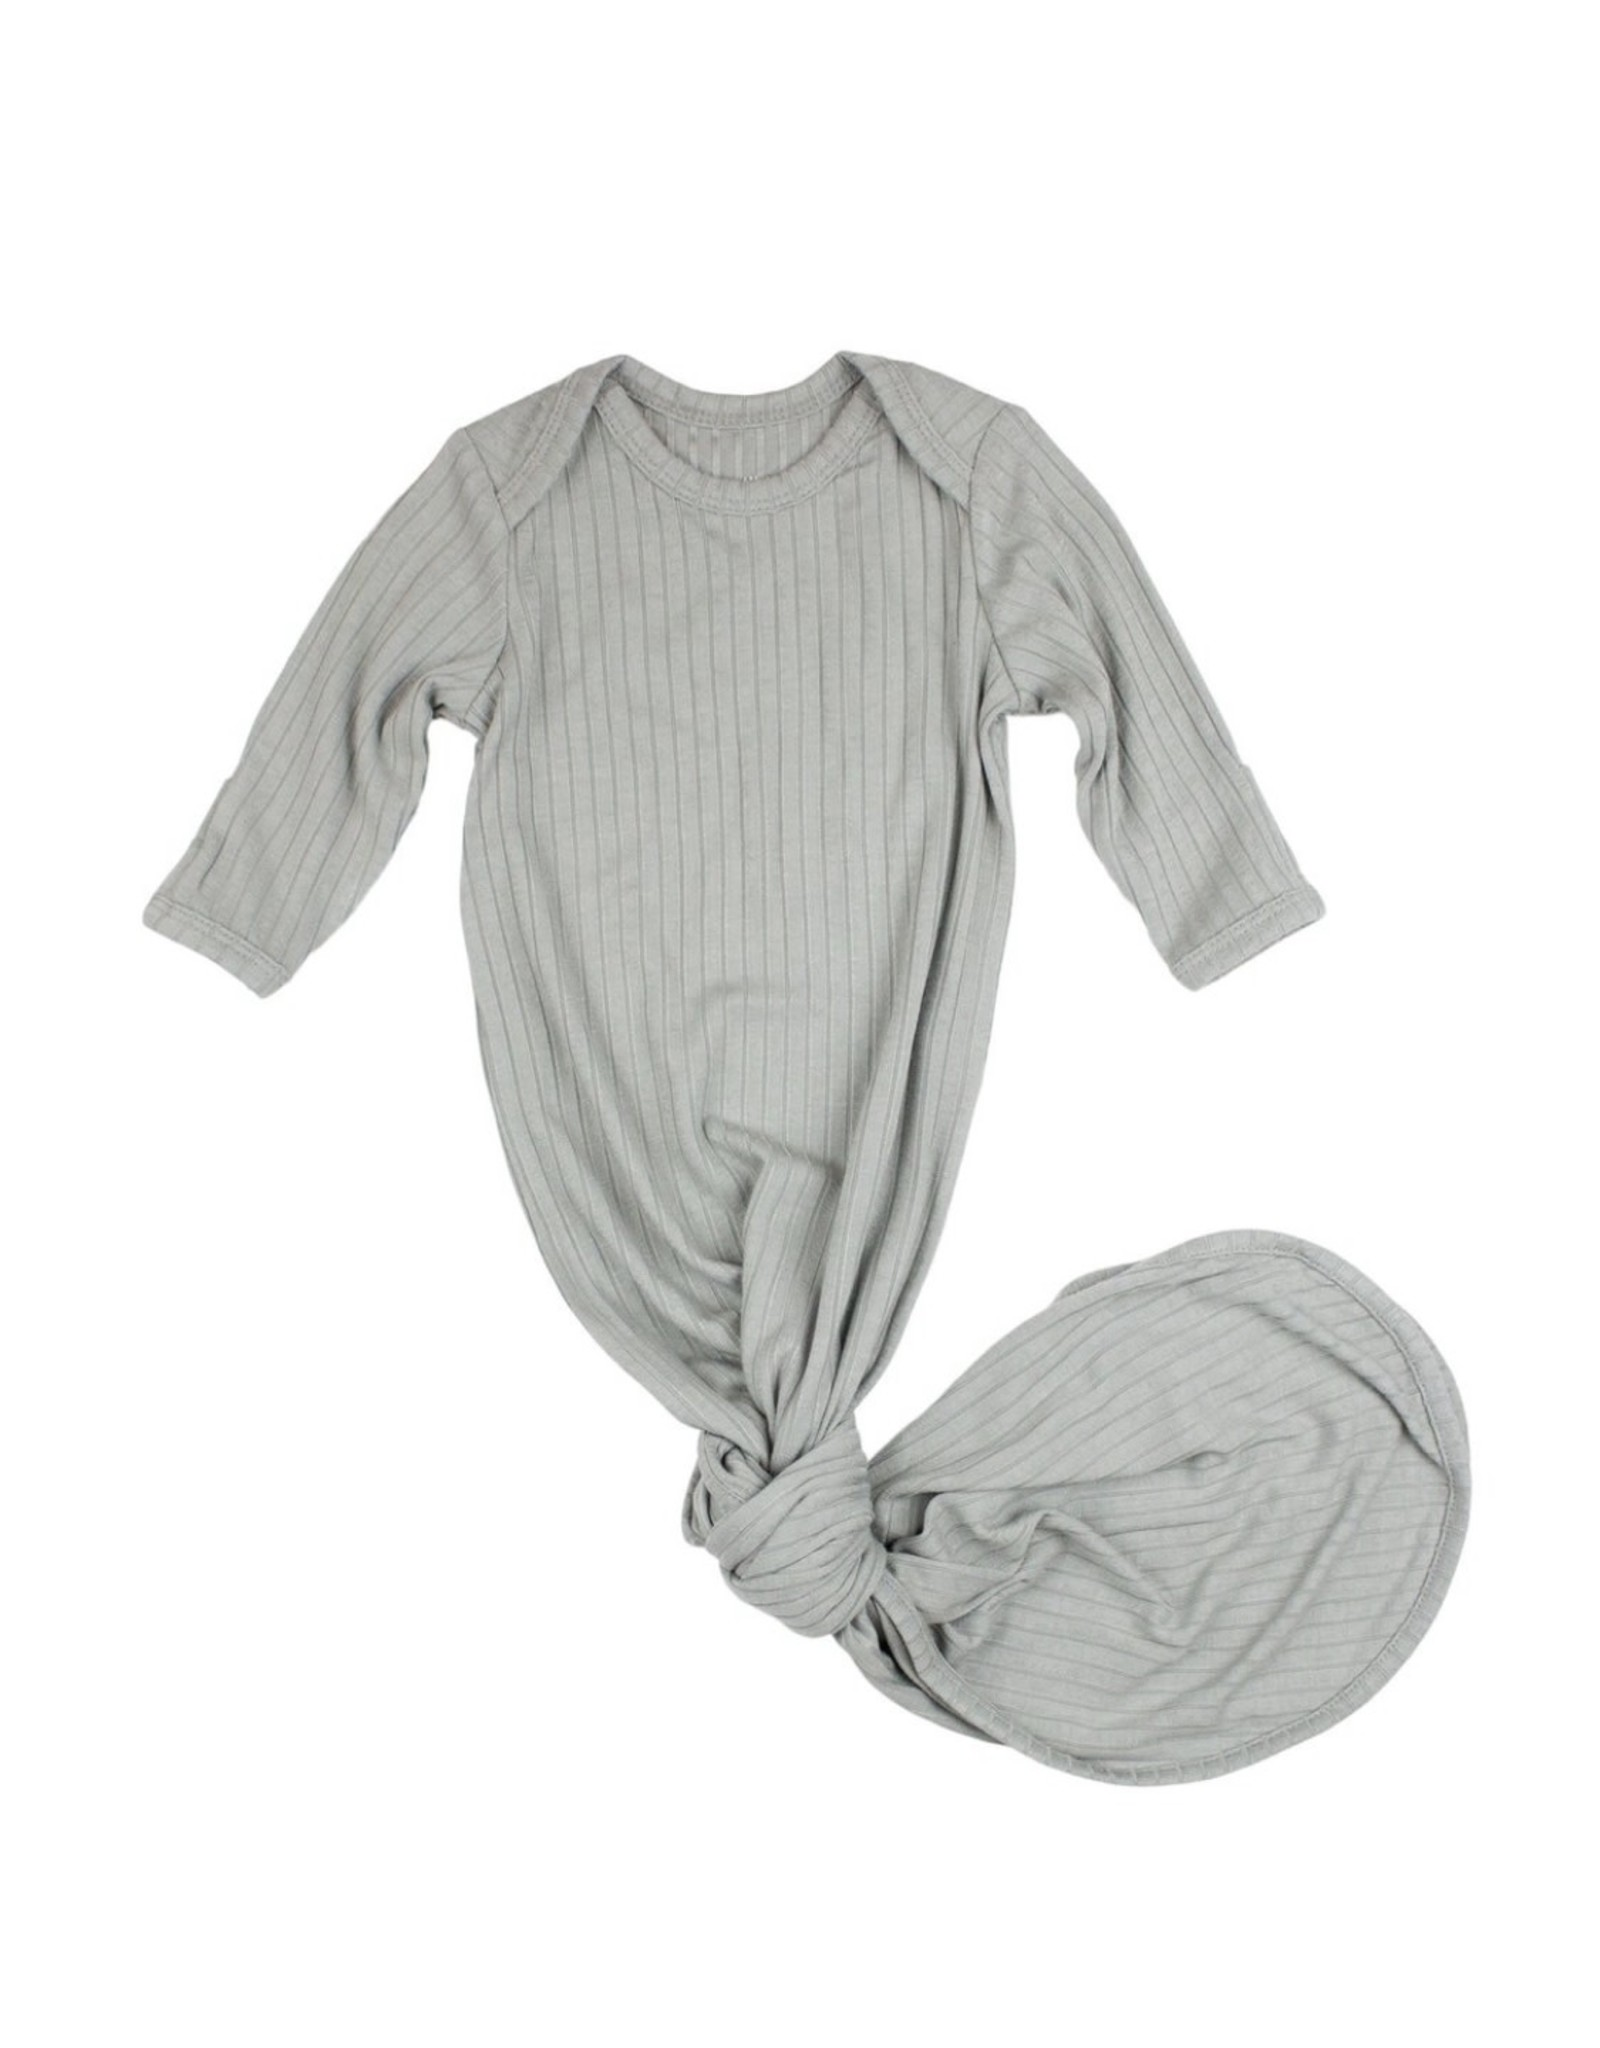 Brave Little Ones Brave Little Ones- Gray Ribbed Knotted Gown 0/3M